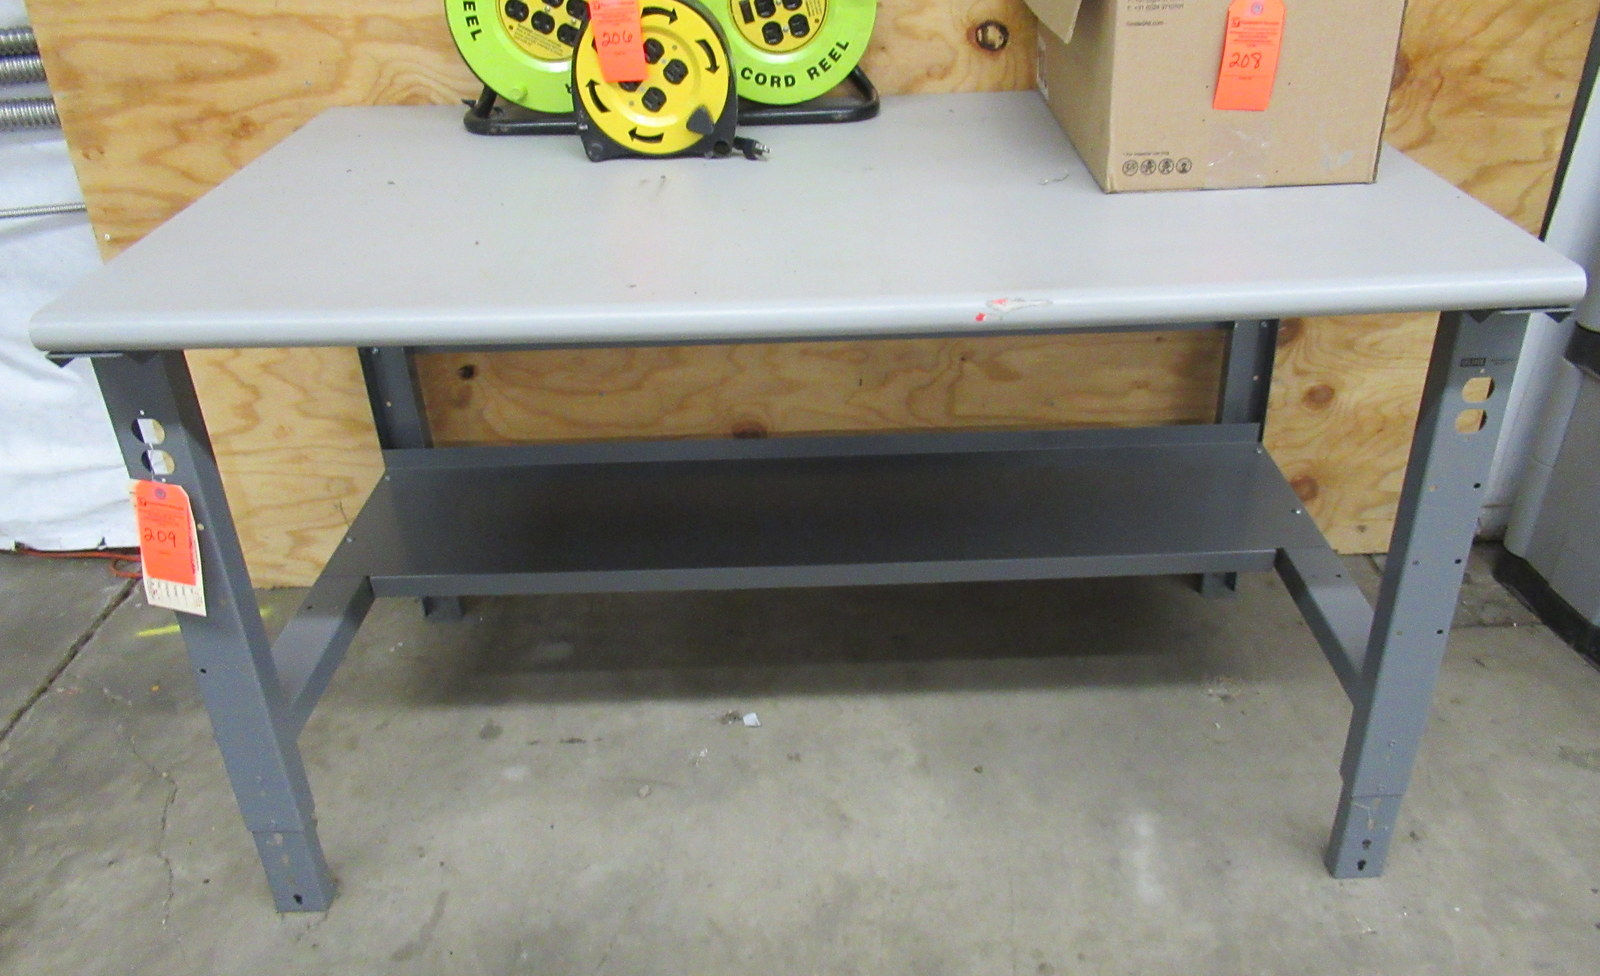 """Lot 209 - Uline H-1136-LAM Packing Shipping Table 60"""" x 36"""" x 36"""" Laminate"""